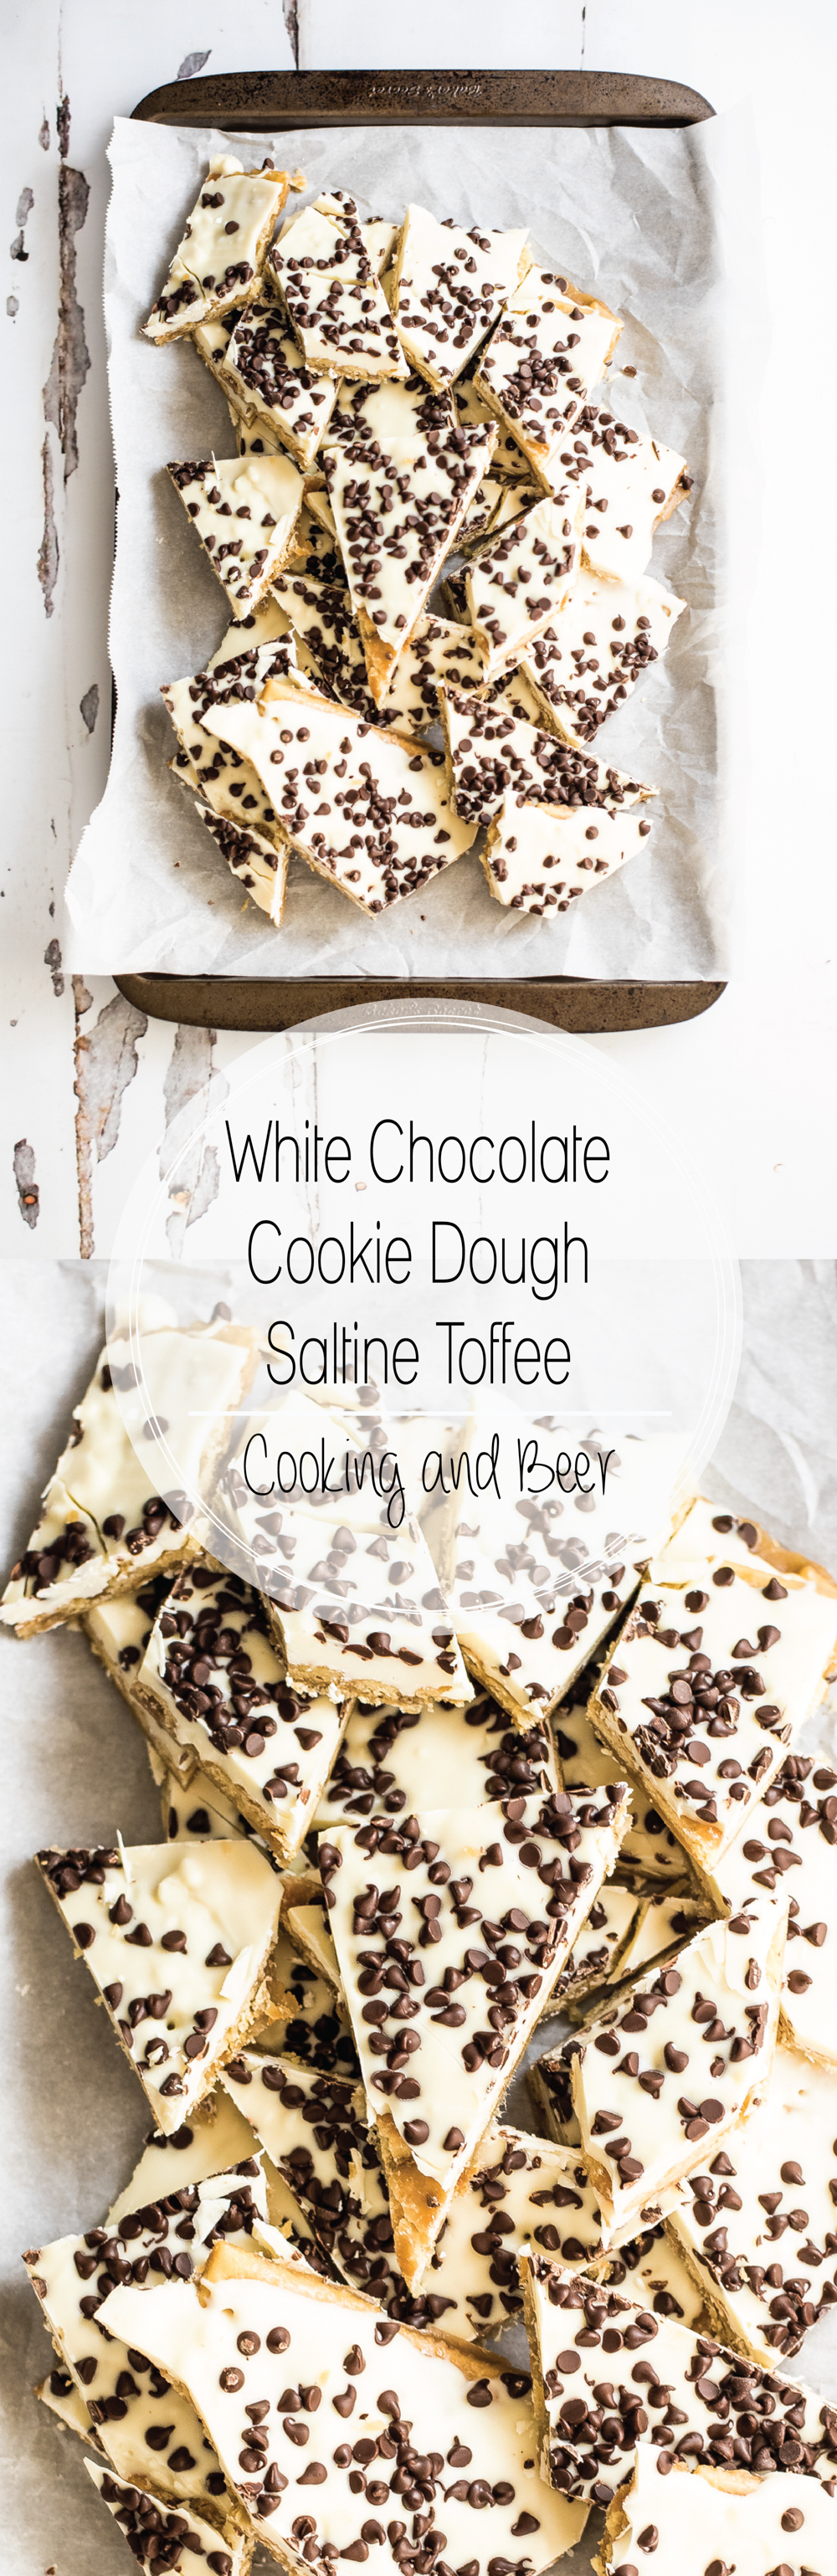 White Chocolate Cookie Dough Saltine Toffee is a fun and sweet treat for the holidays. It is perfect for gift giving or holiday cookie boards!